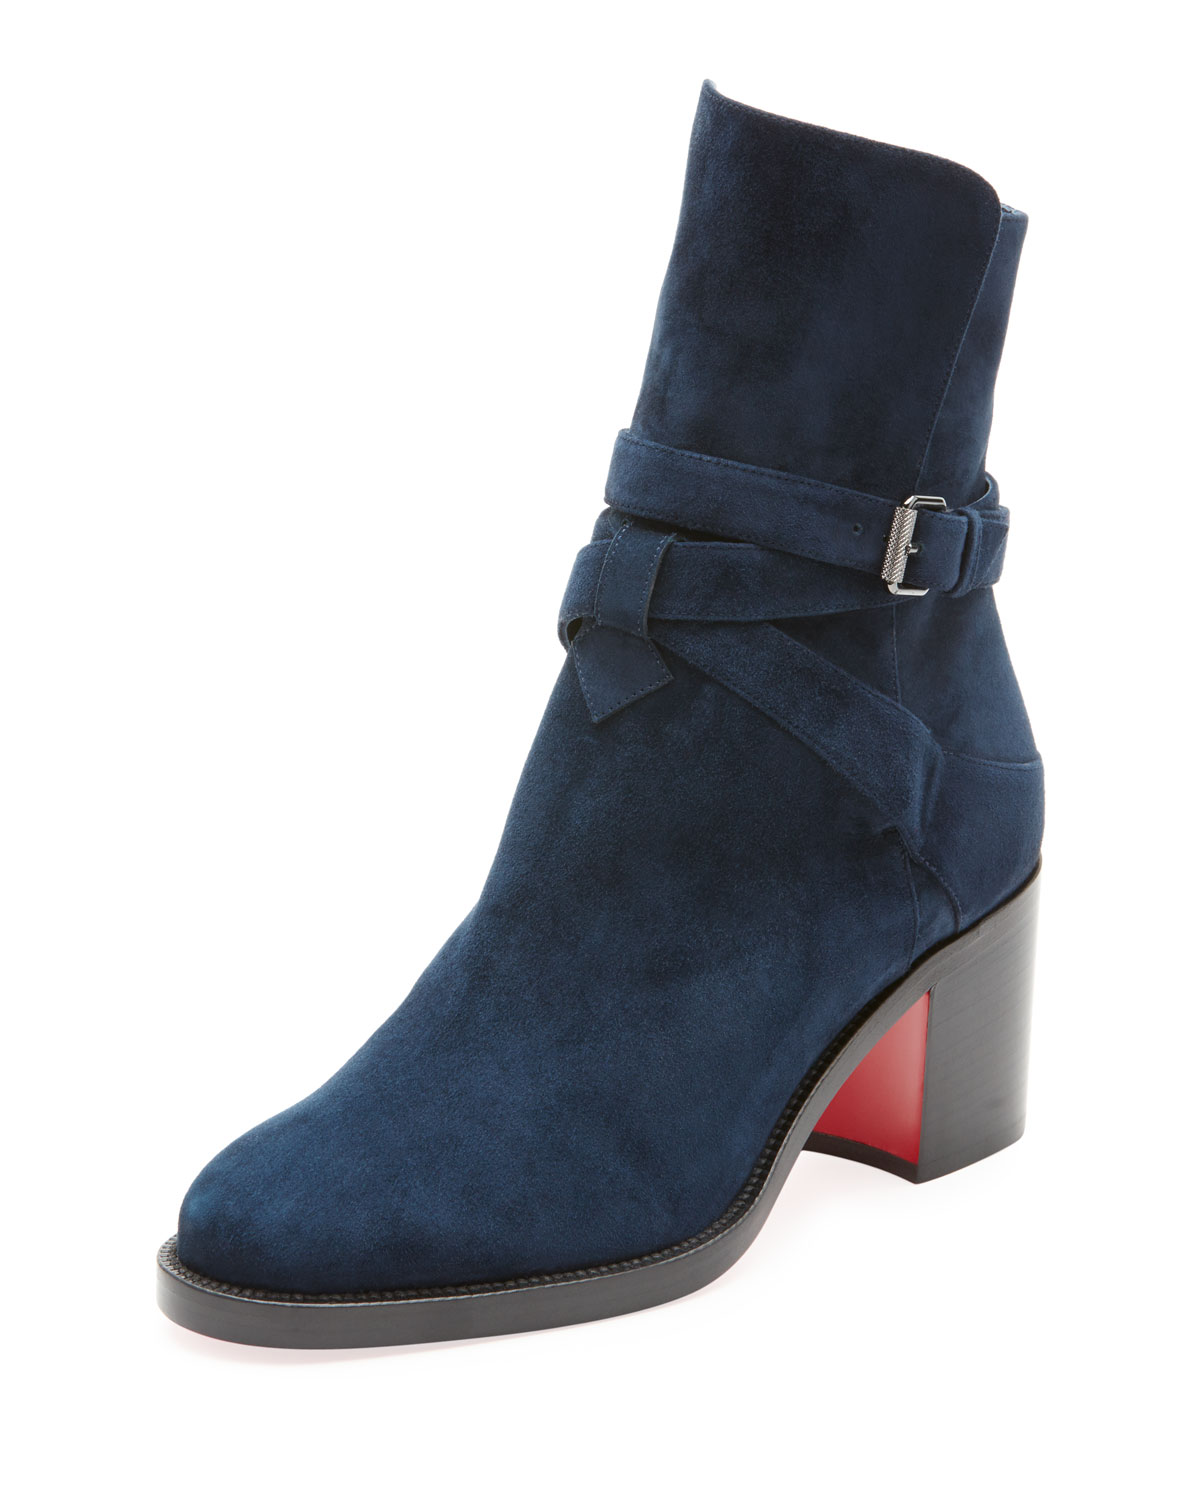 CHRISTIAN LOUBOUTIN KARI SUEDE RED SOLE ANKLE BOOT